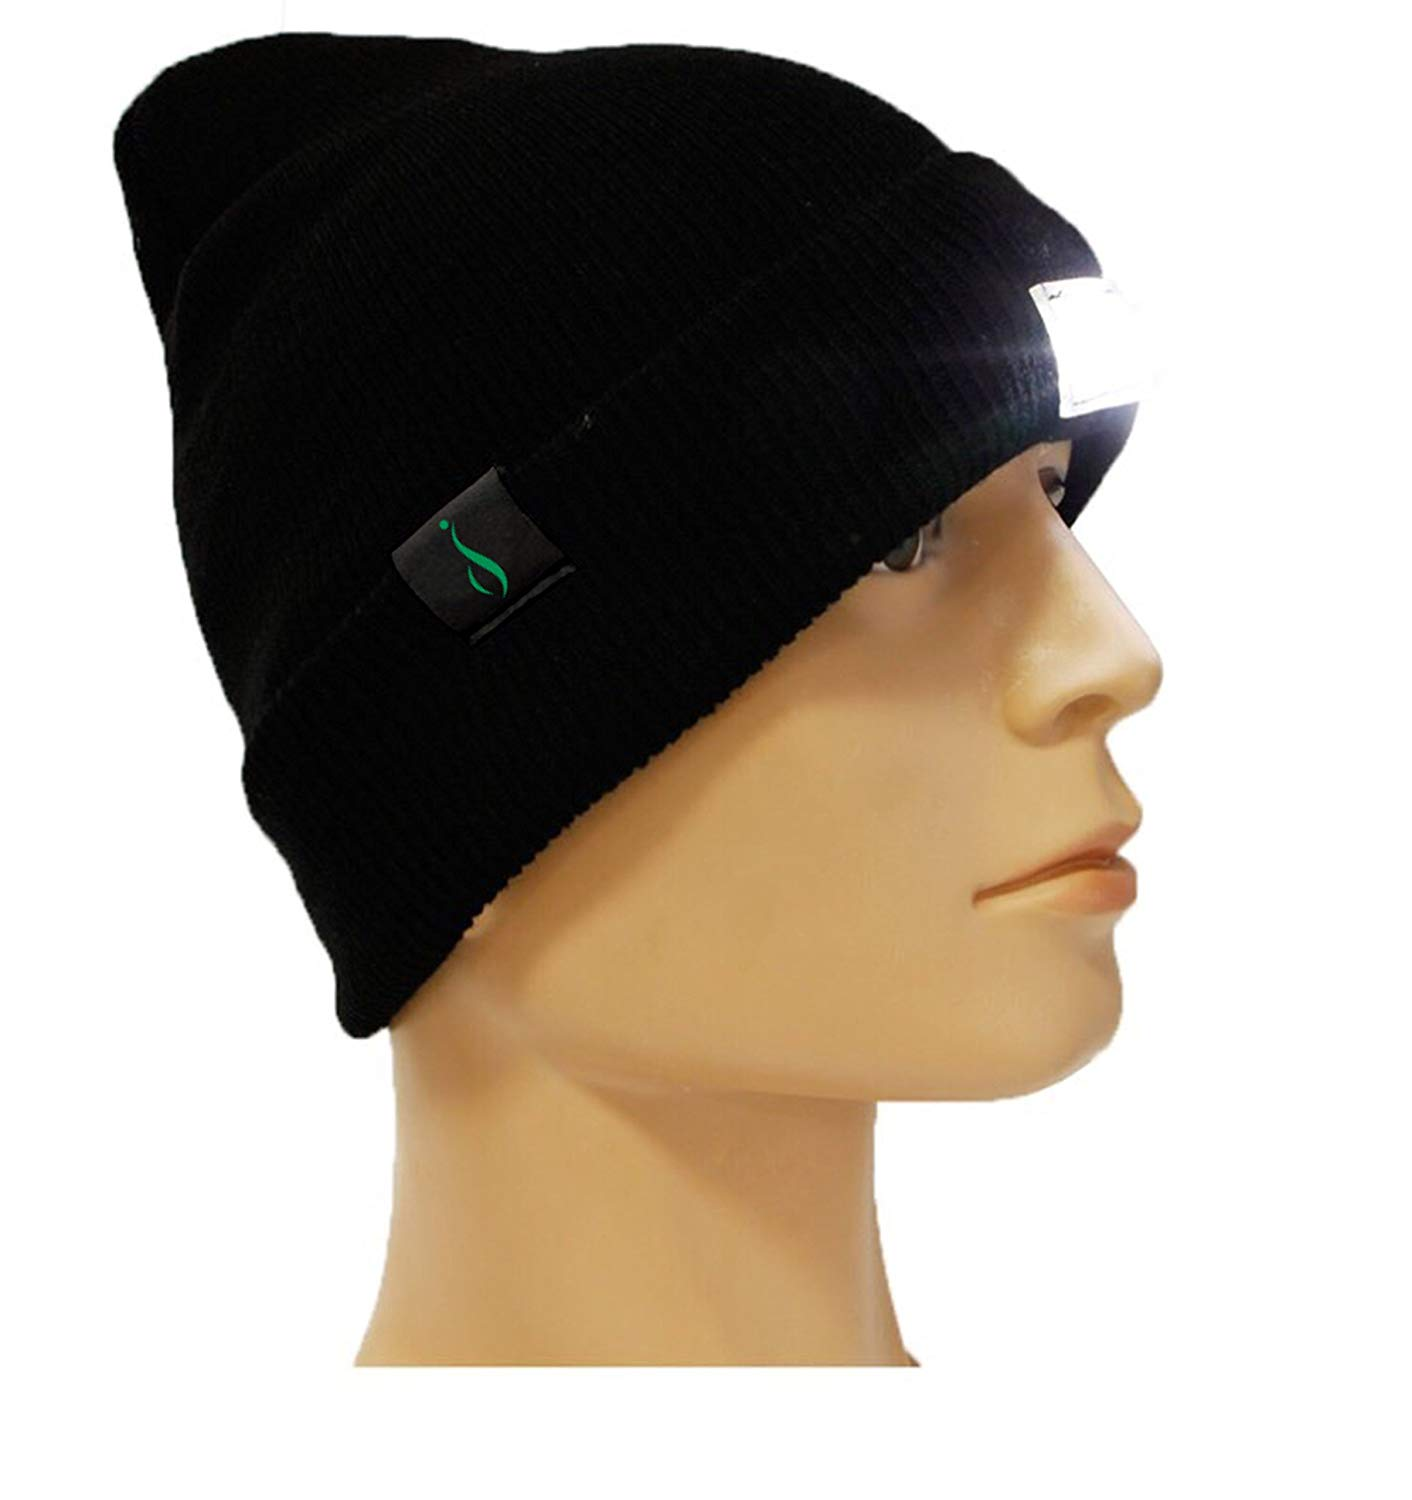 iElegance Extremely Bright LED Lighted Beanie, Headlamp, Cap, Hat! Unisex! Perfect Hands-Free Flashlight for Jogging, Dog Walking, Hunting, Camping, Grilling, and More! 100%!